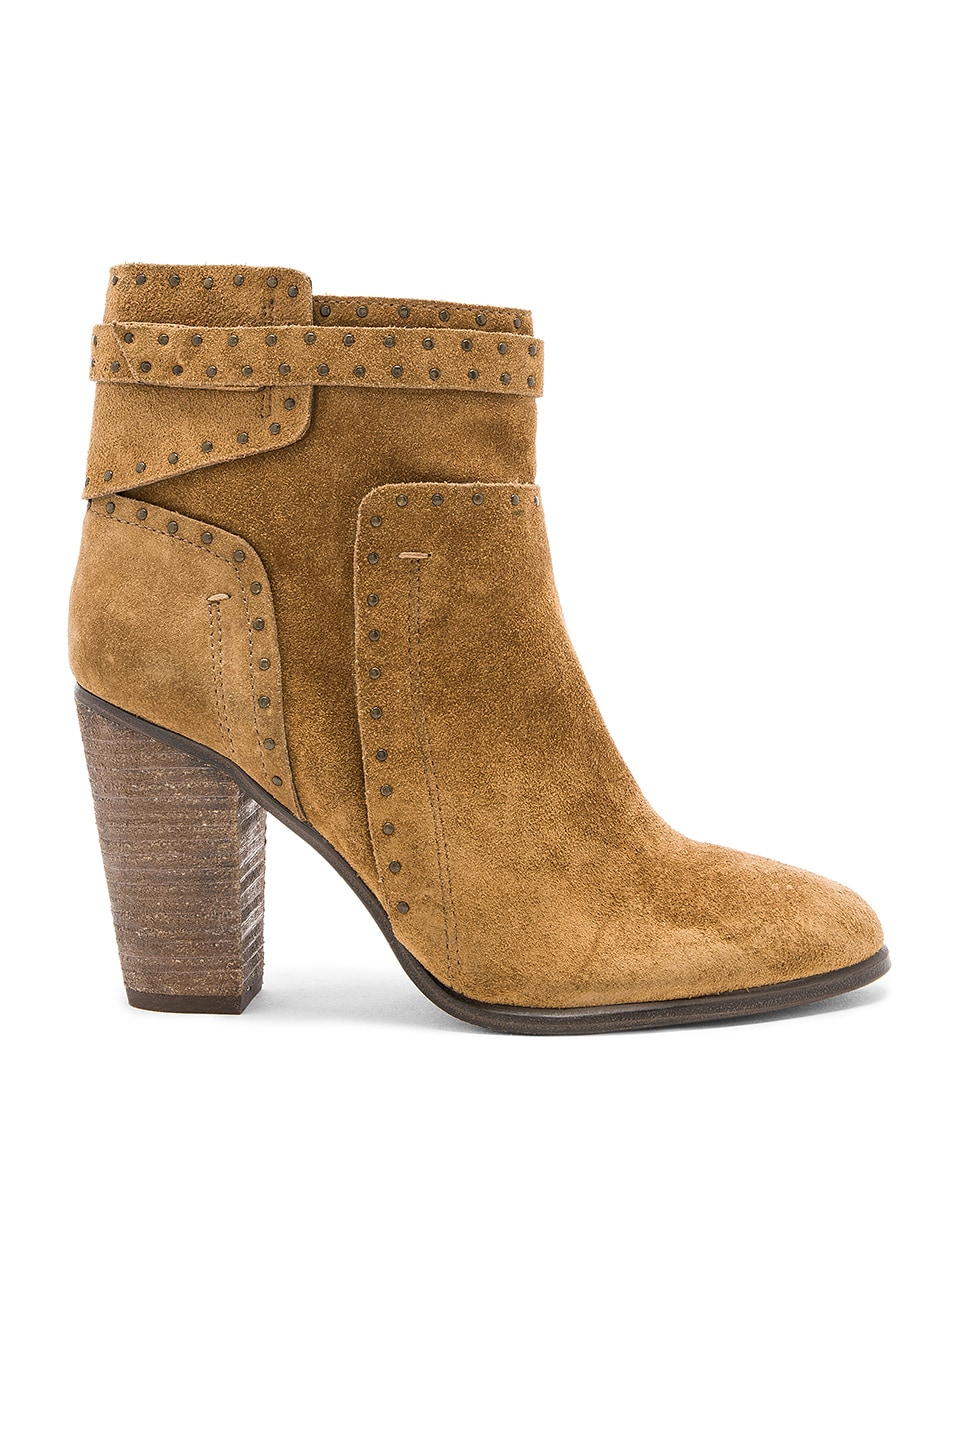 Vince Camuto Faythes Booties in Boulder